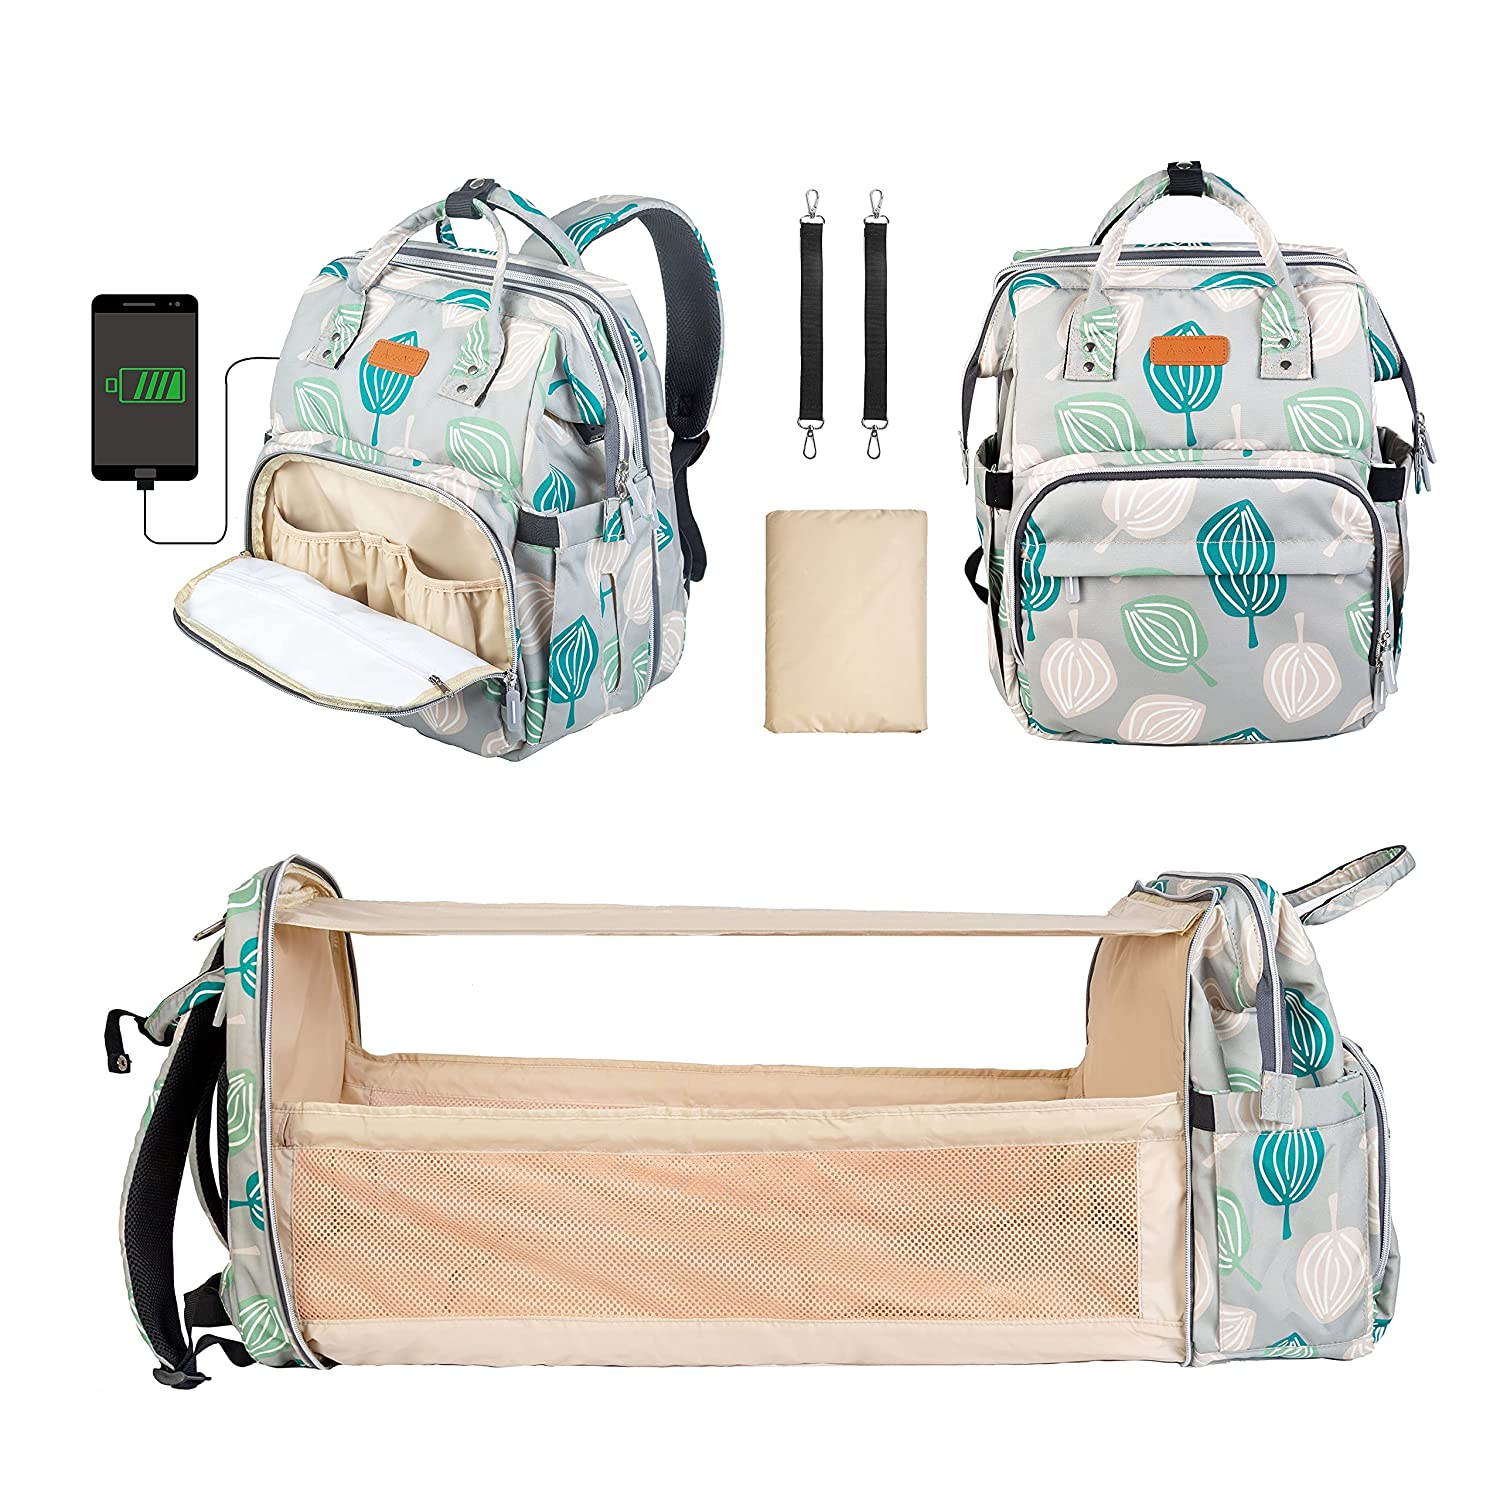 Accevo Diaper Bag Backpack, Large Capacity Baby Nappy Changing Bag, Waterproof Multifunction Maternity Travel Back Pack with Changing Pad & Stroller Straps,Mattress Foldable Baby Travel Bassinet Bed